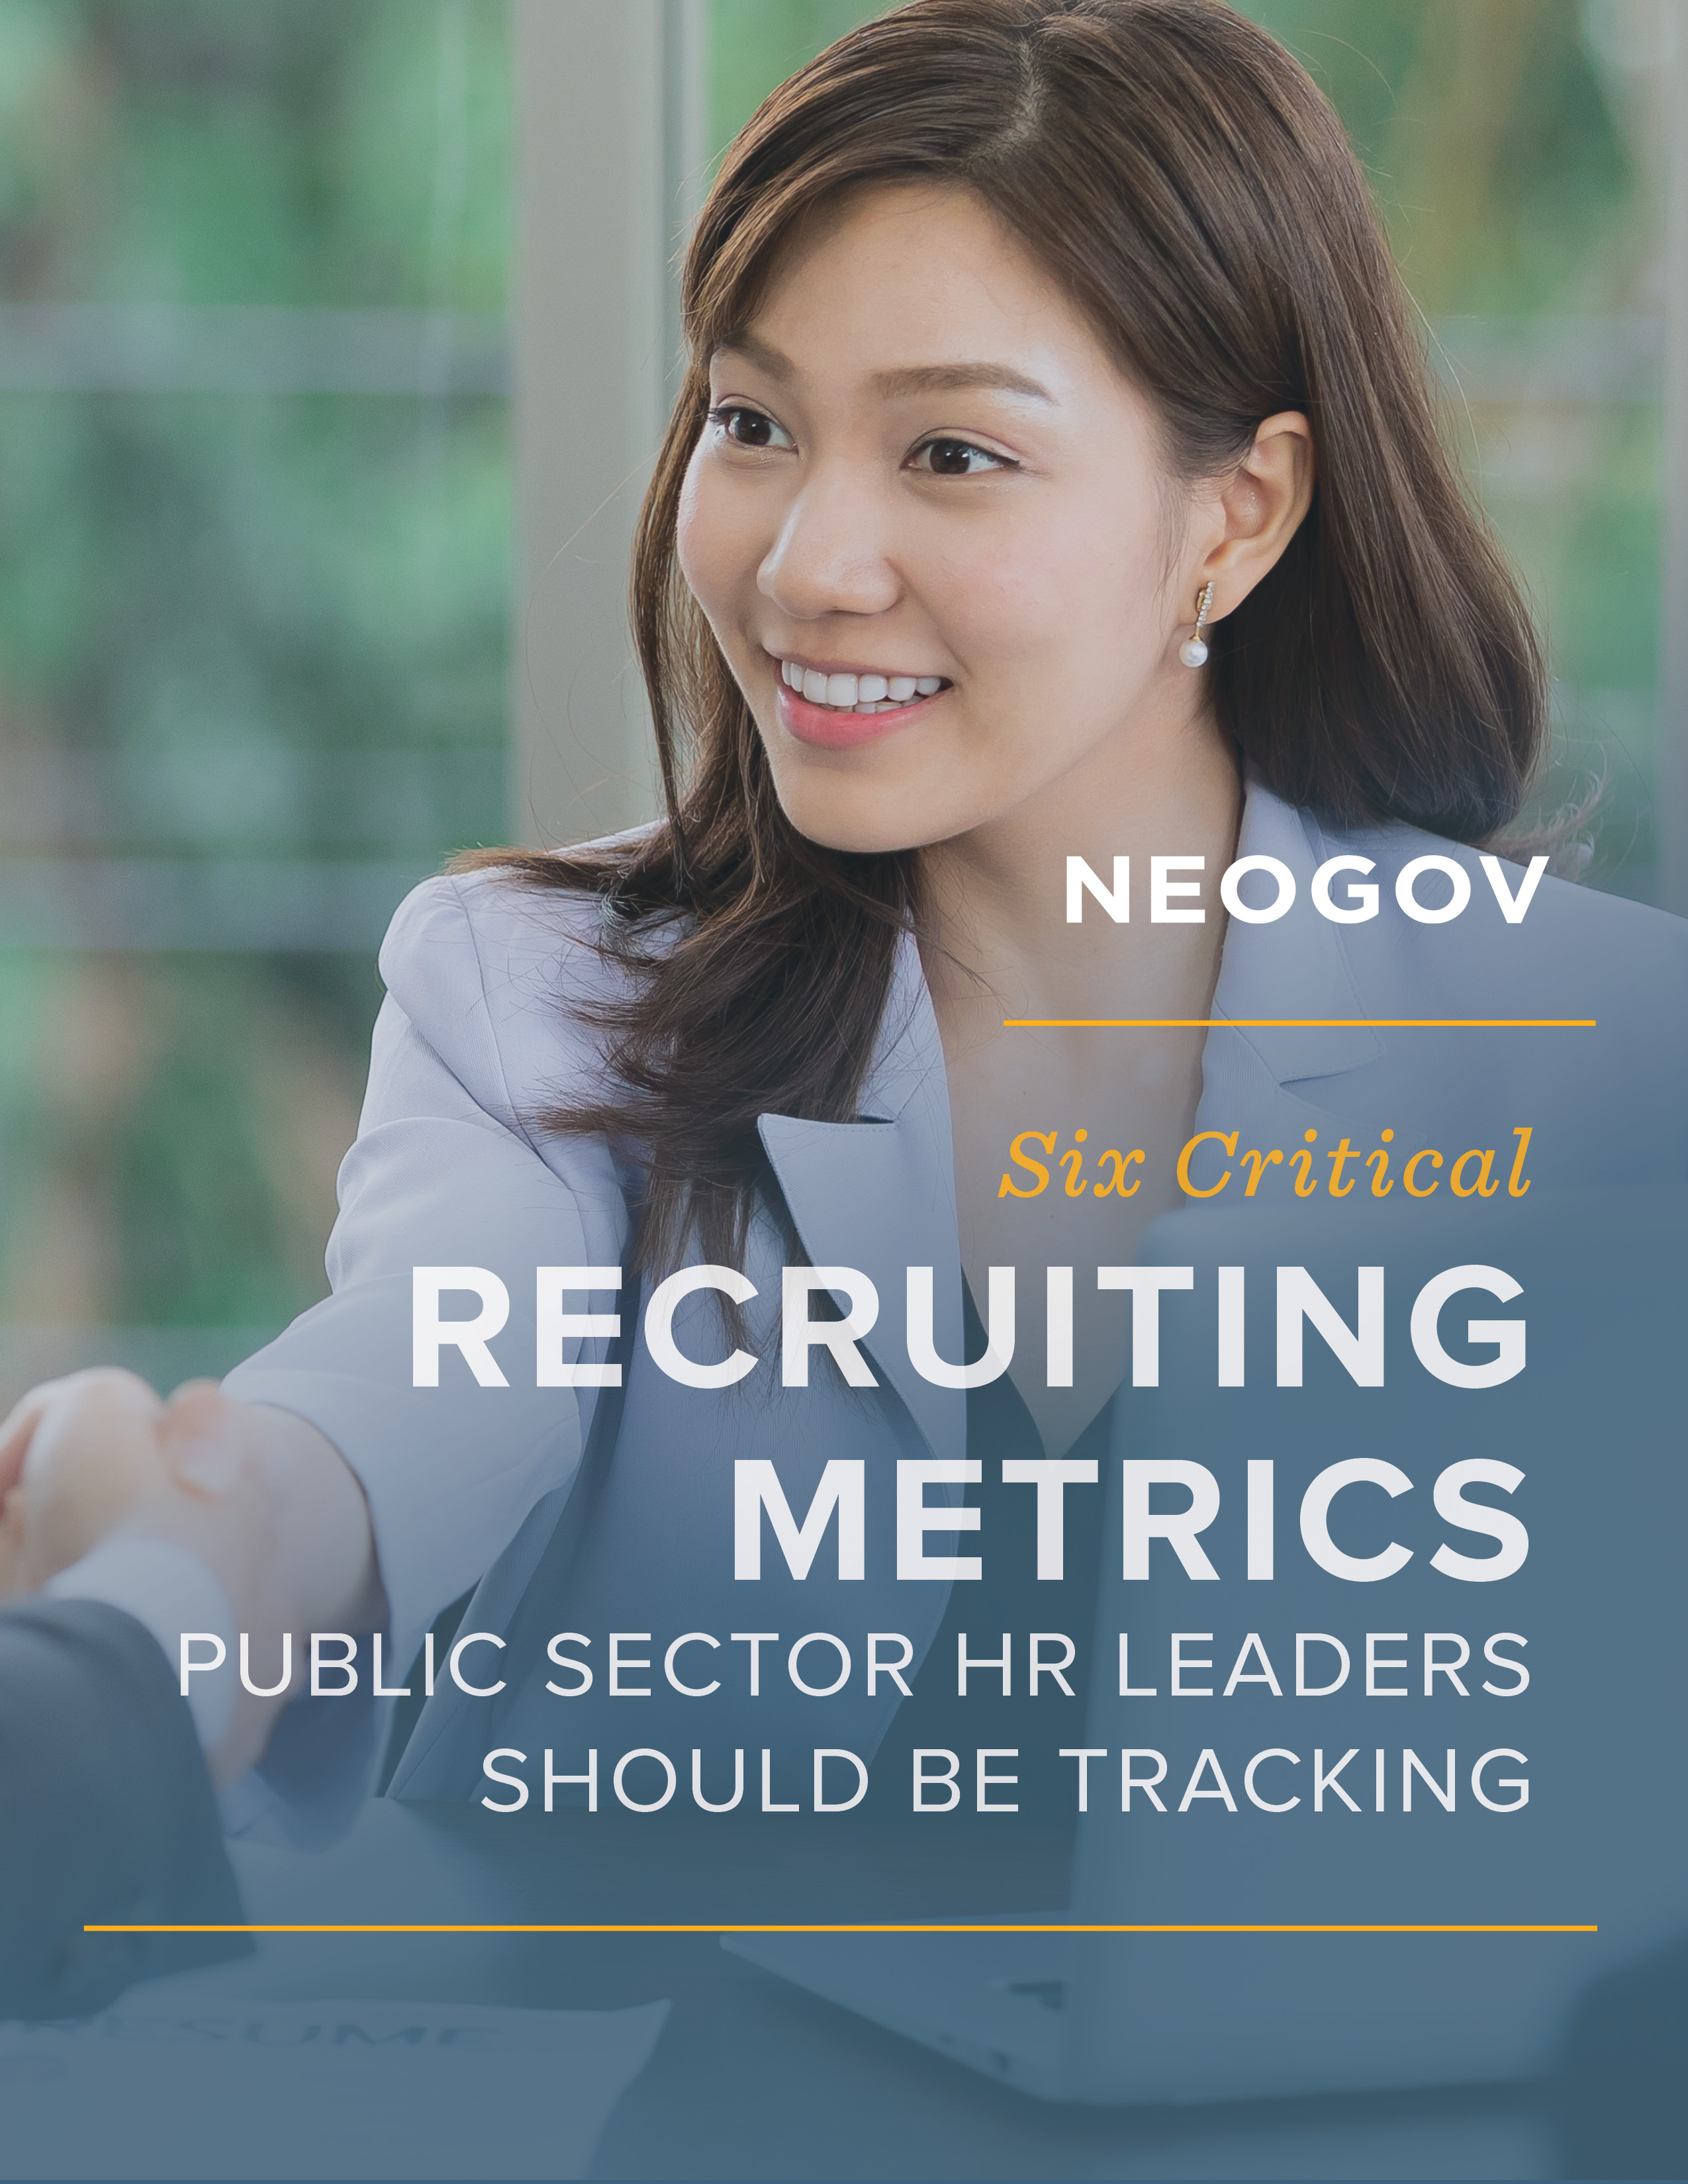 NEOGOV - 6 Critical Recruiting Metrics Public Sector HR Leaders Should Be Tracking